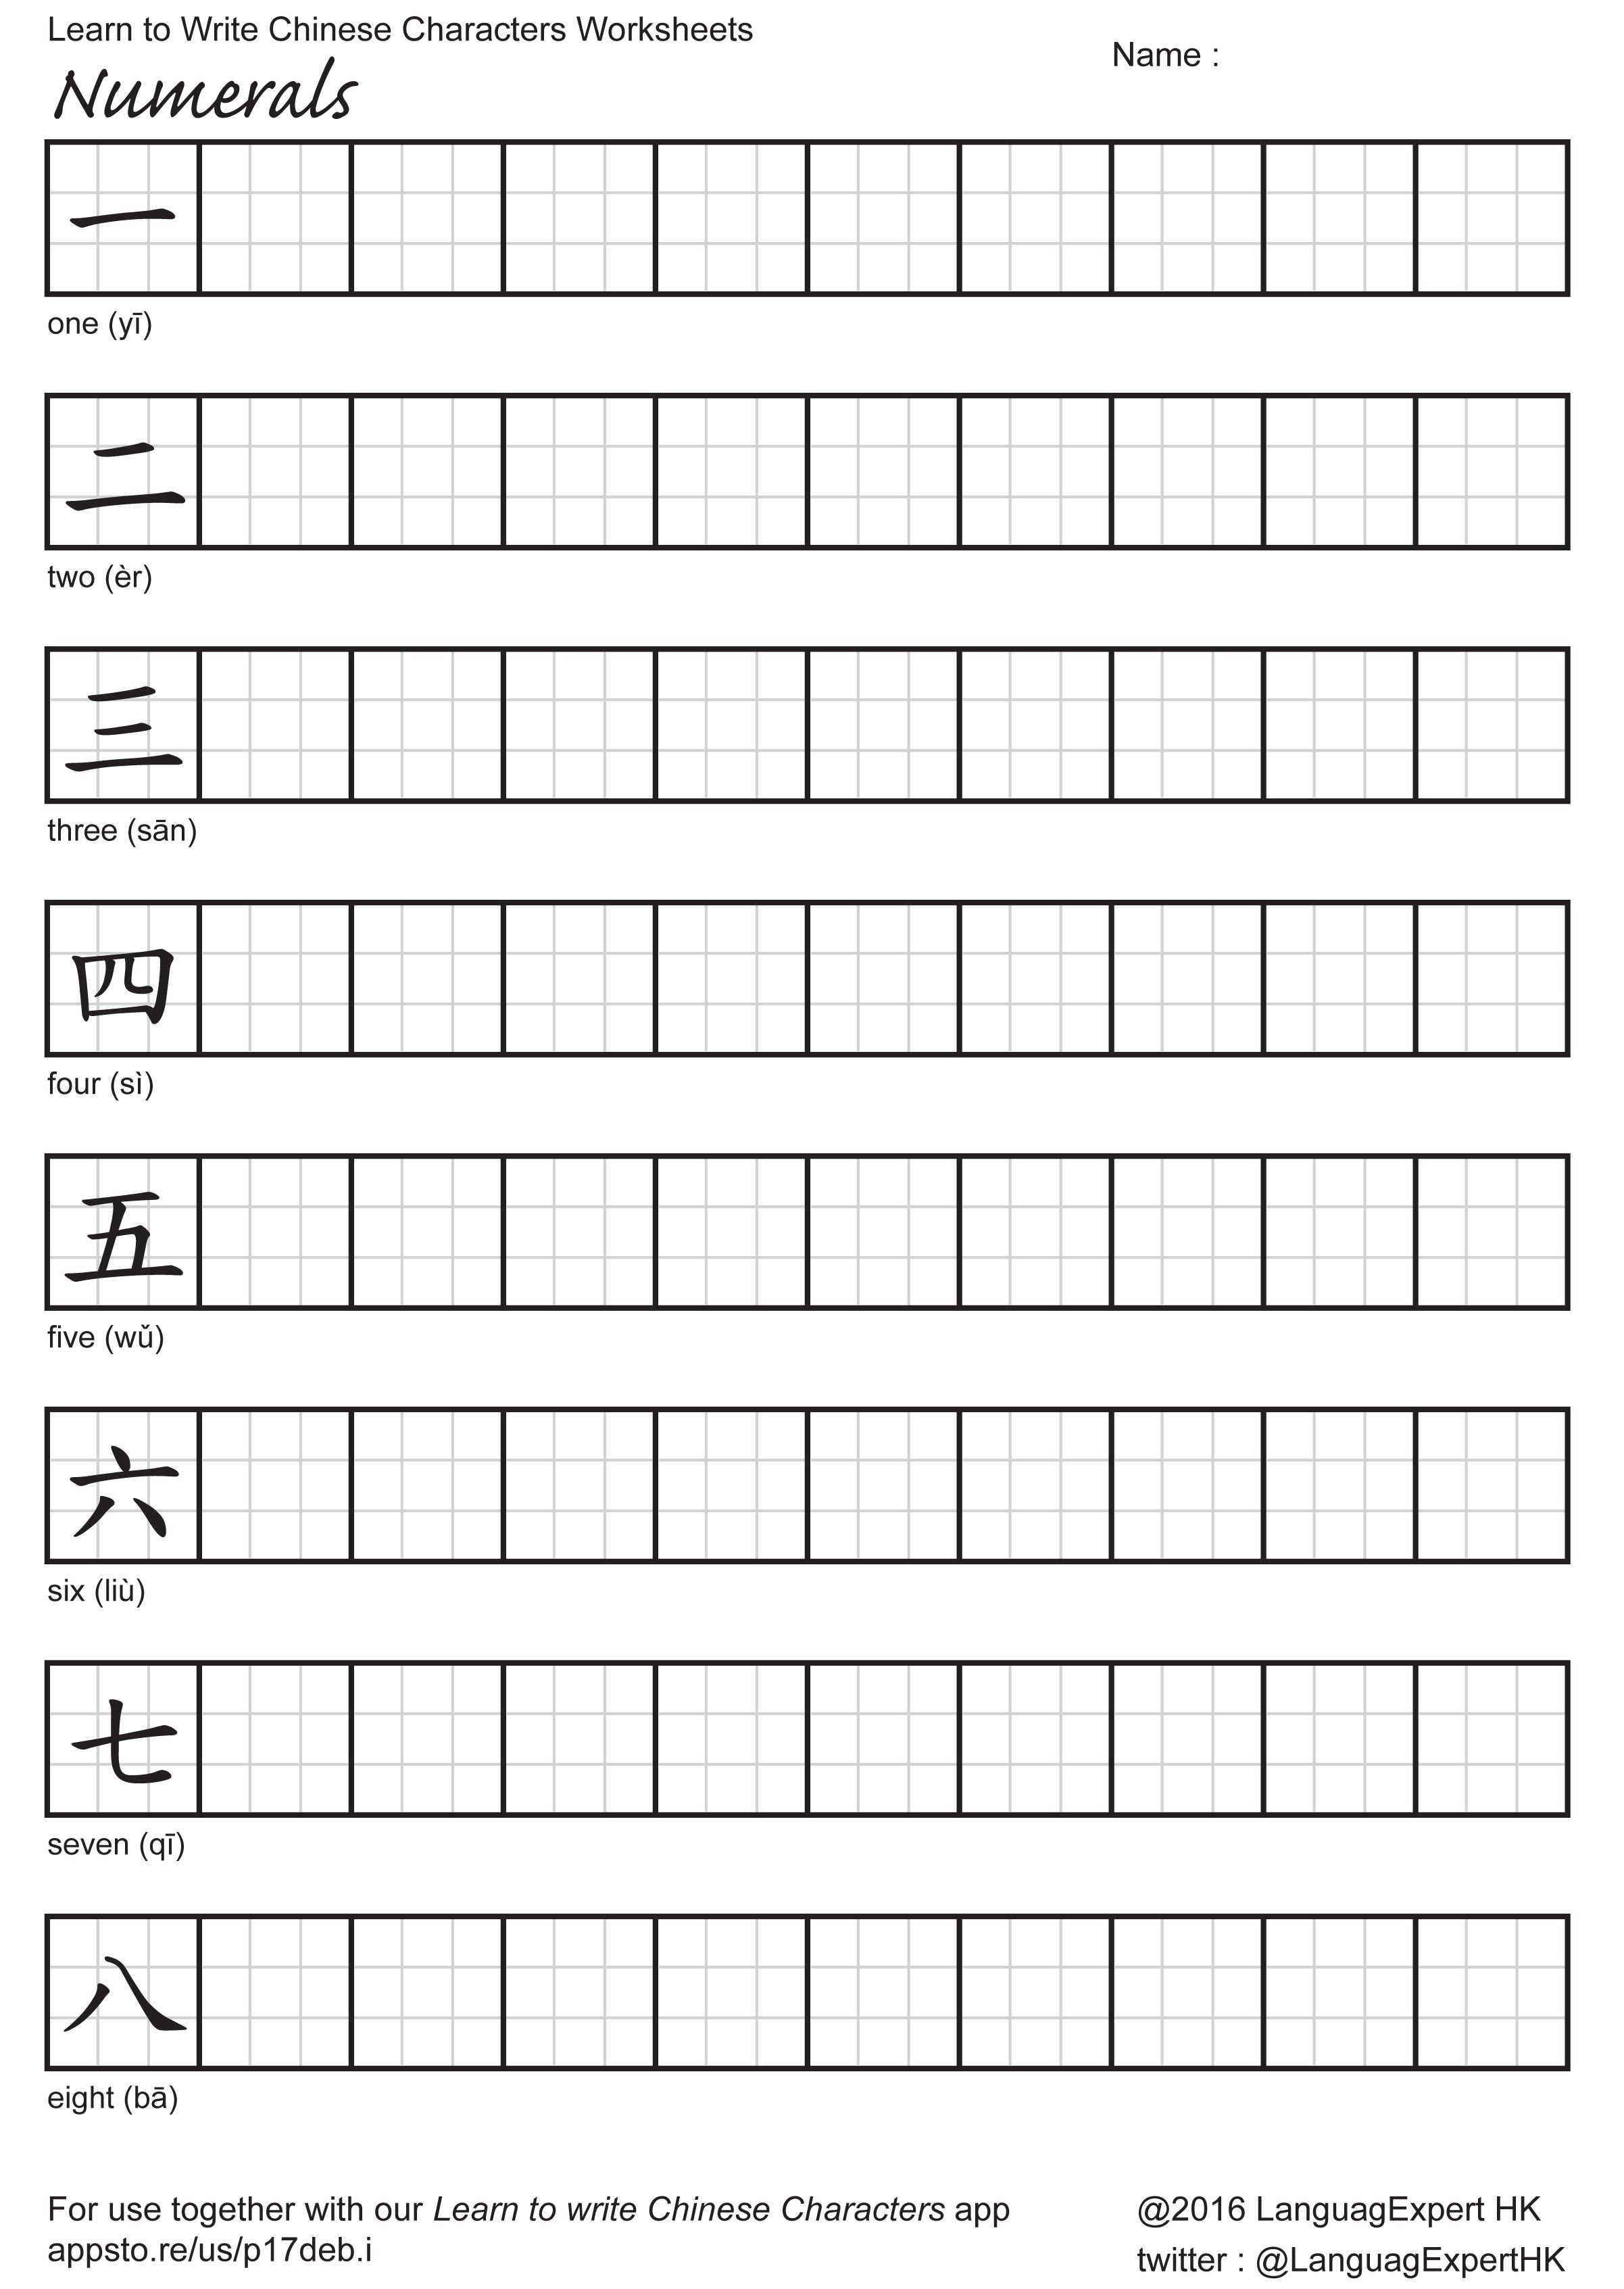 Learn To Write Chinese Characters Worksheets With Images